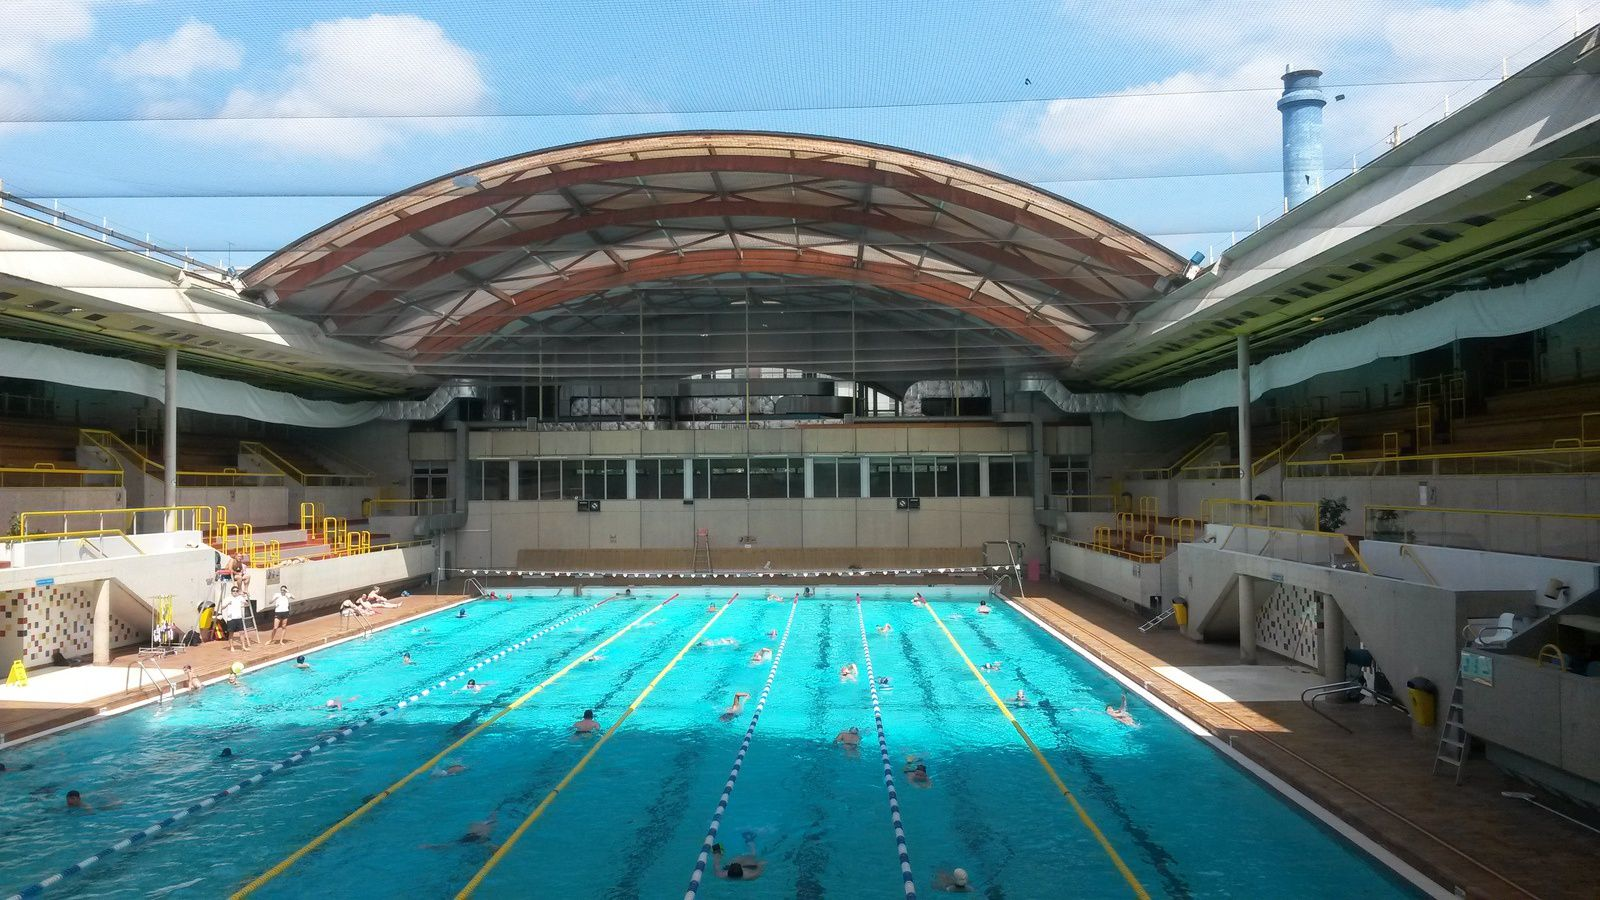 Pool talk a dane in france for Piscine paris